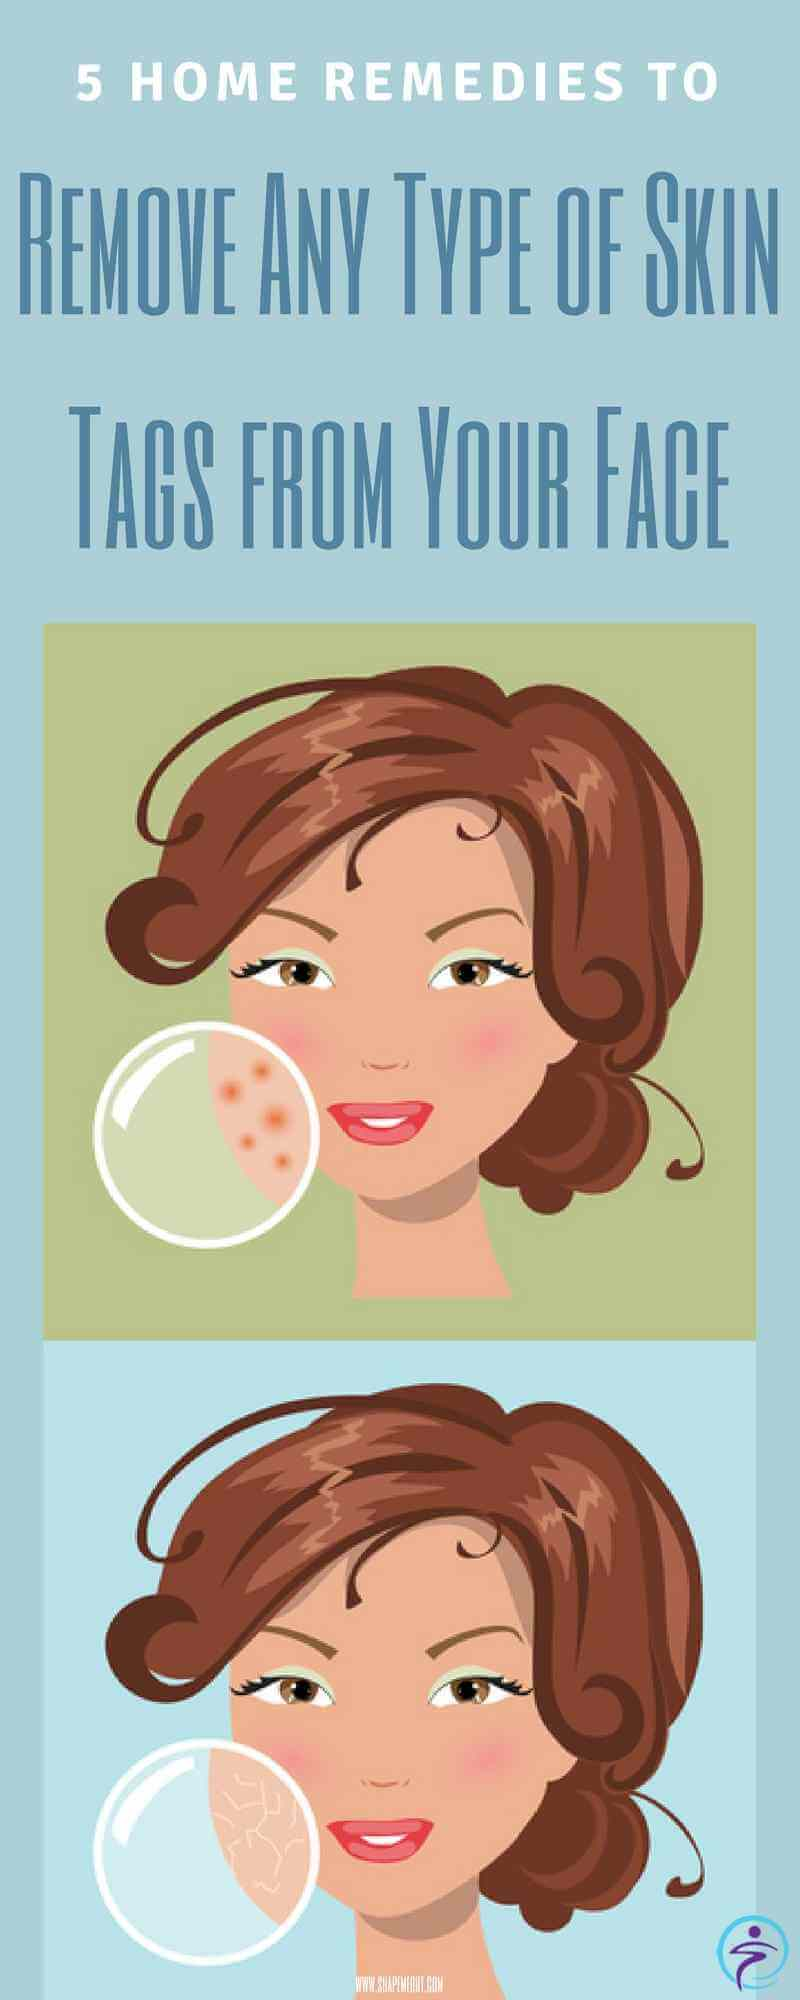 Home Remedies to Remove Any Type of Skin Tags from Your Face